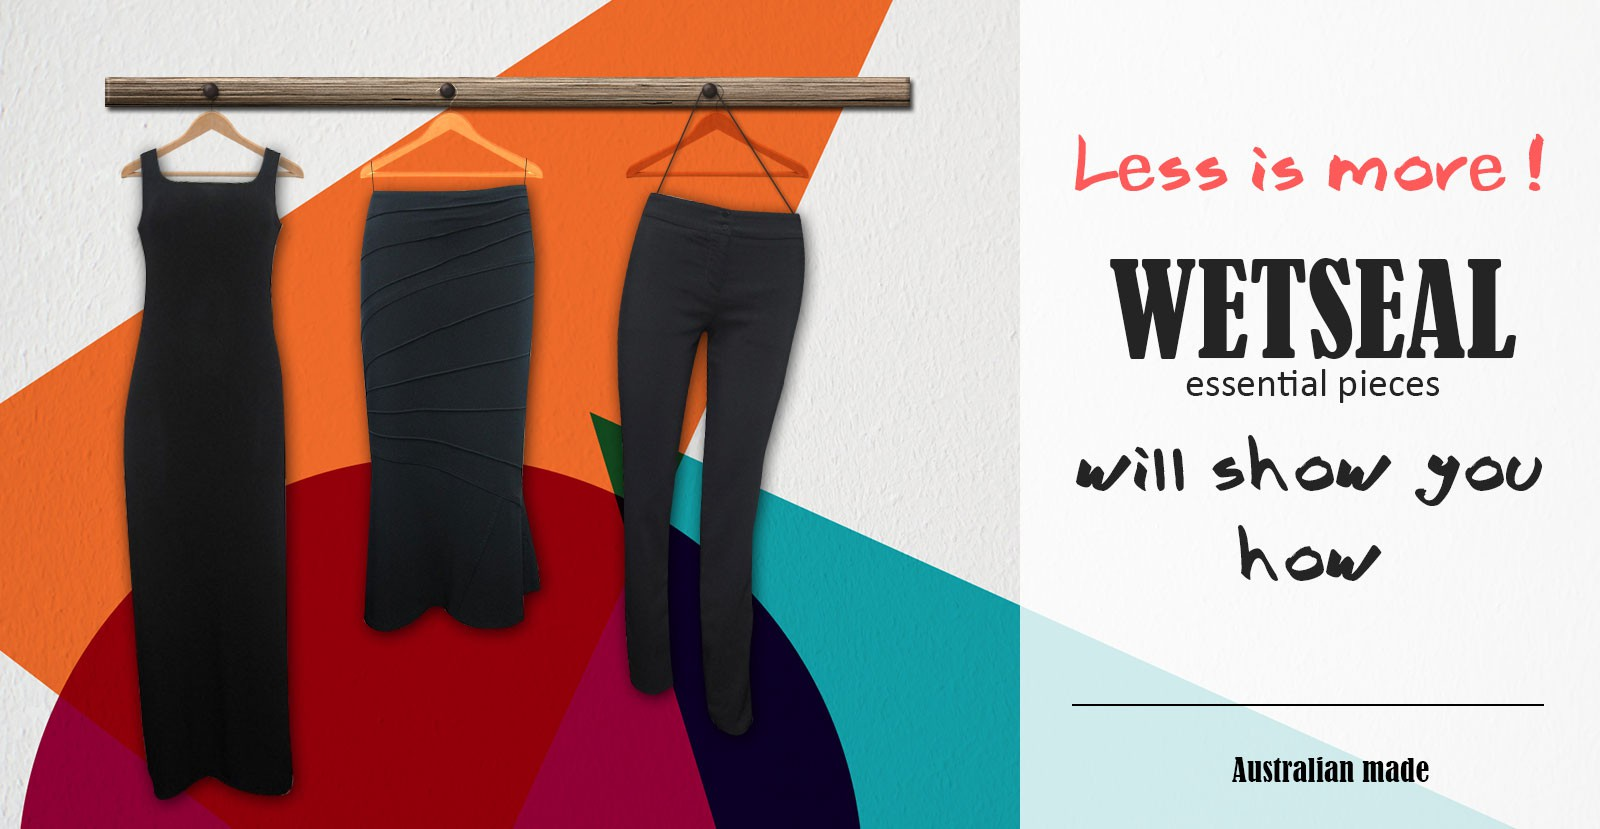 Less is more, Wet Seal will show you how.